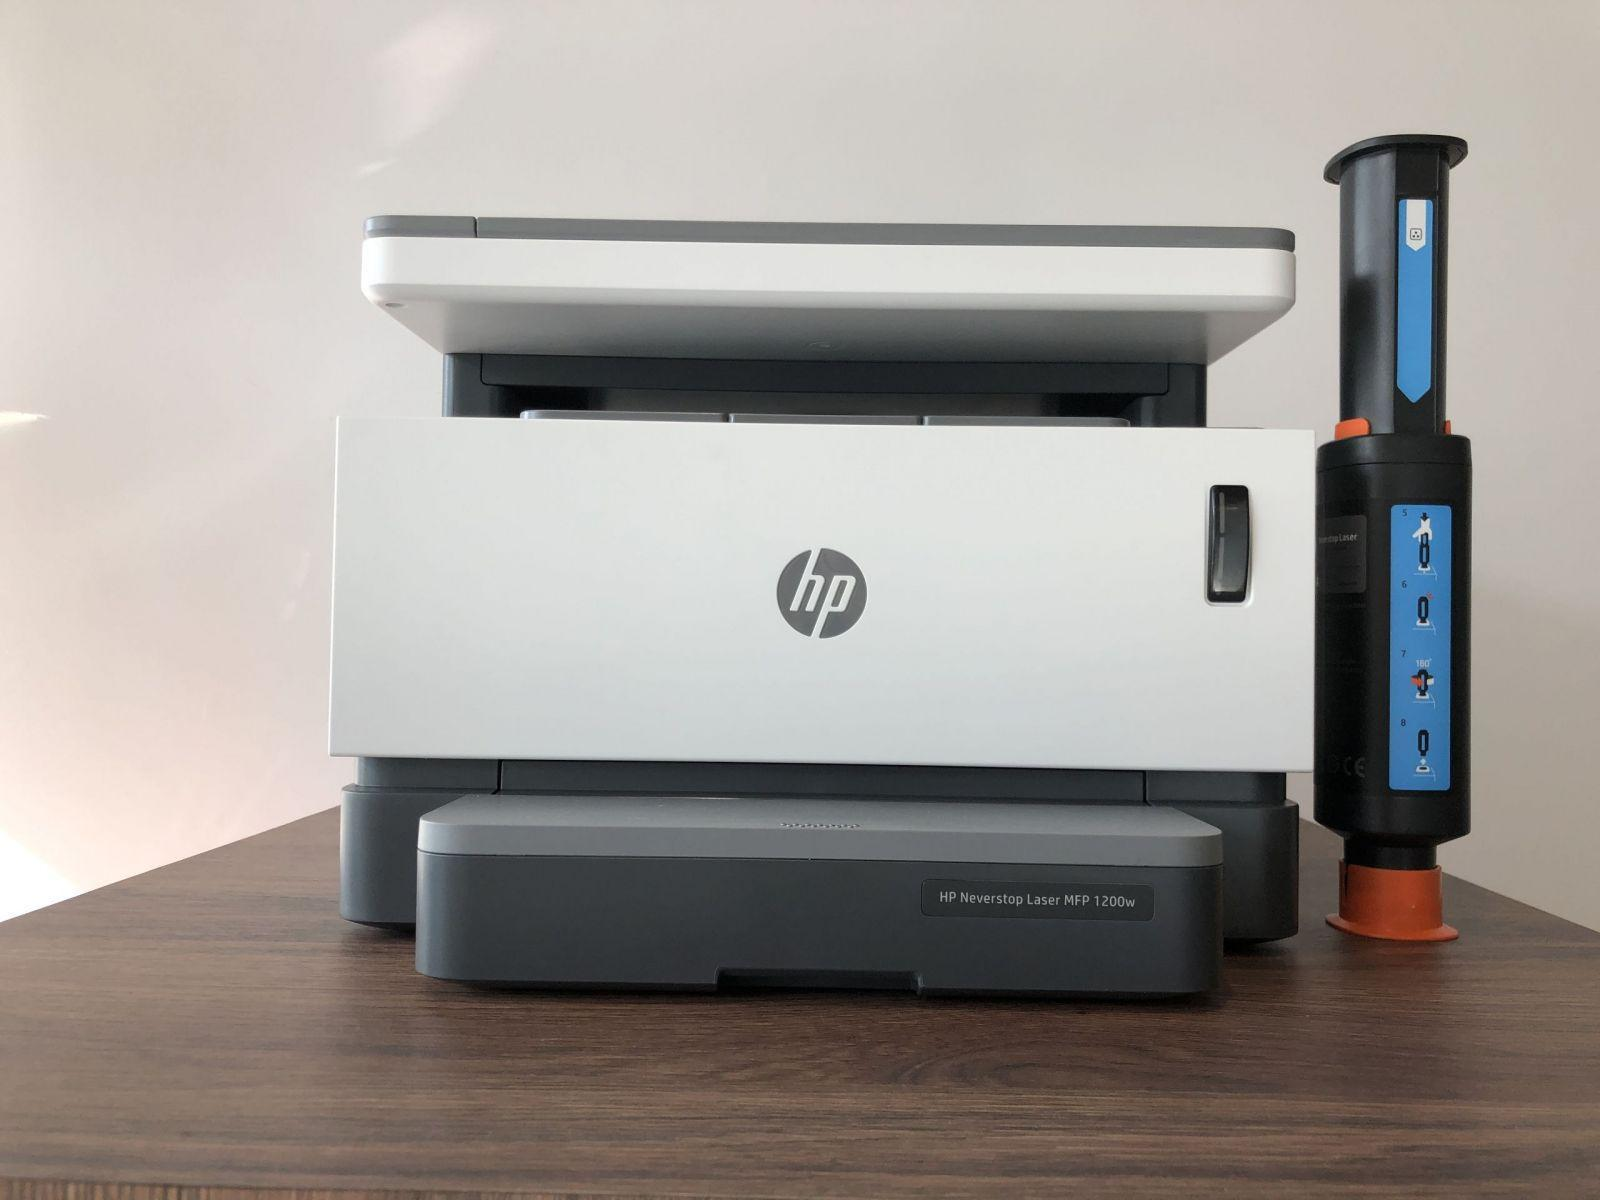 Print without cartridge.  Overview HP Neverstop Laser 1200w MFP Print without a cartridge.  Review of HP Neverstop Laser 1200w MFP